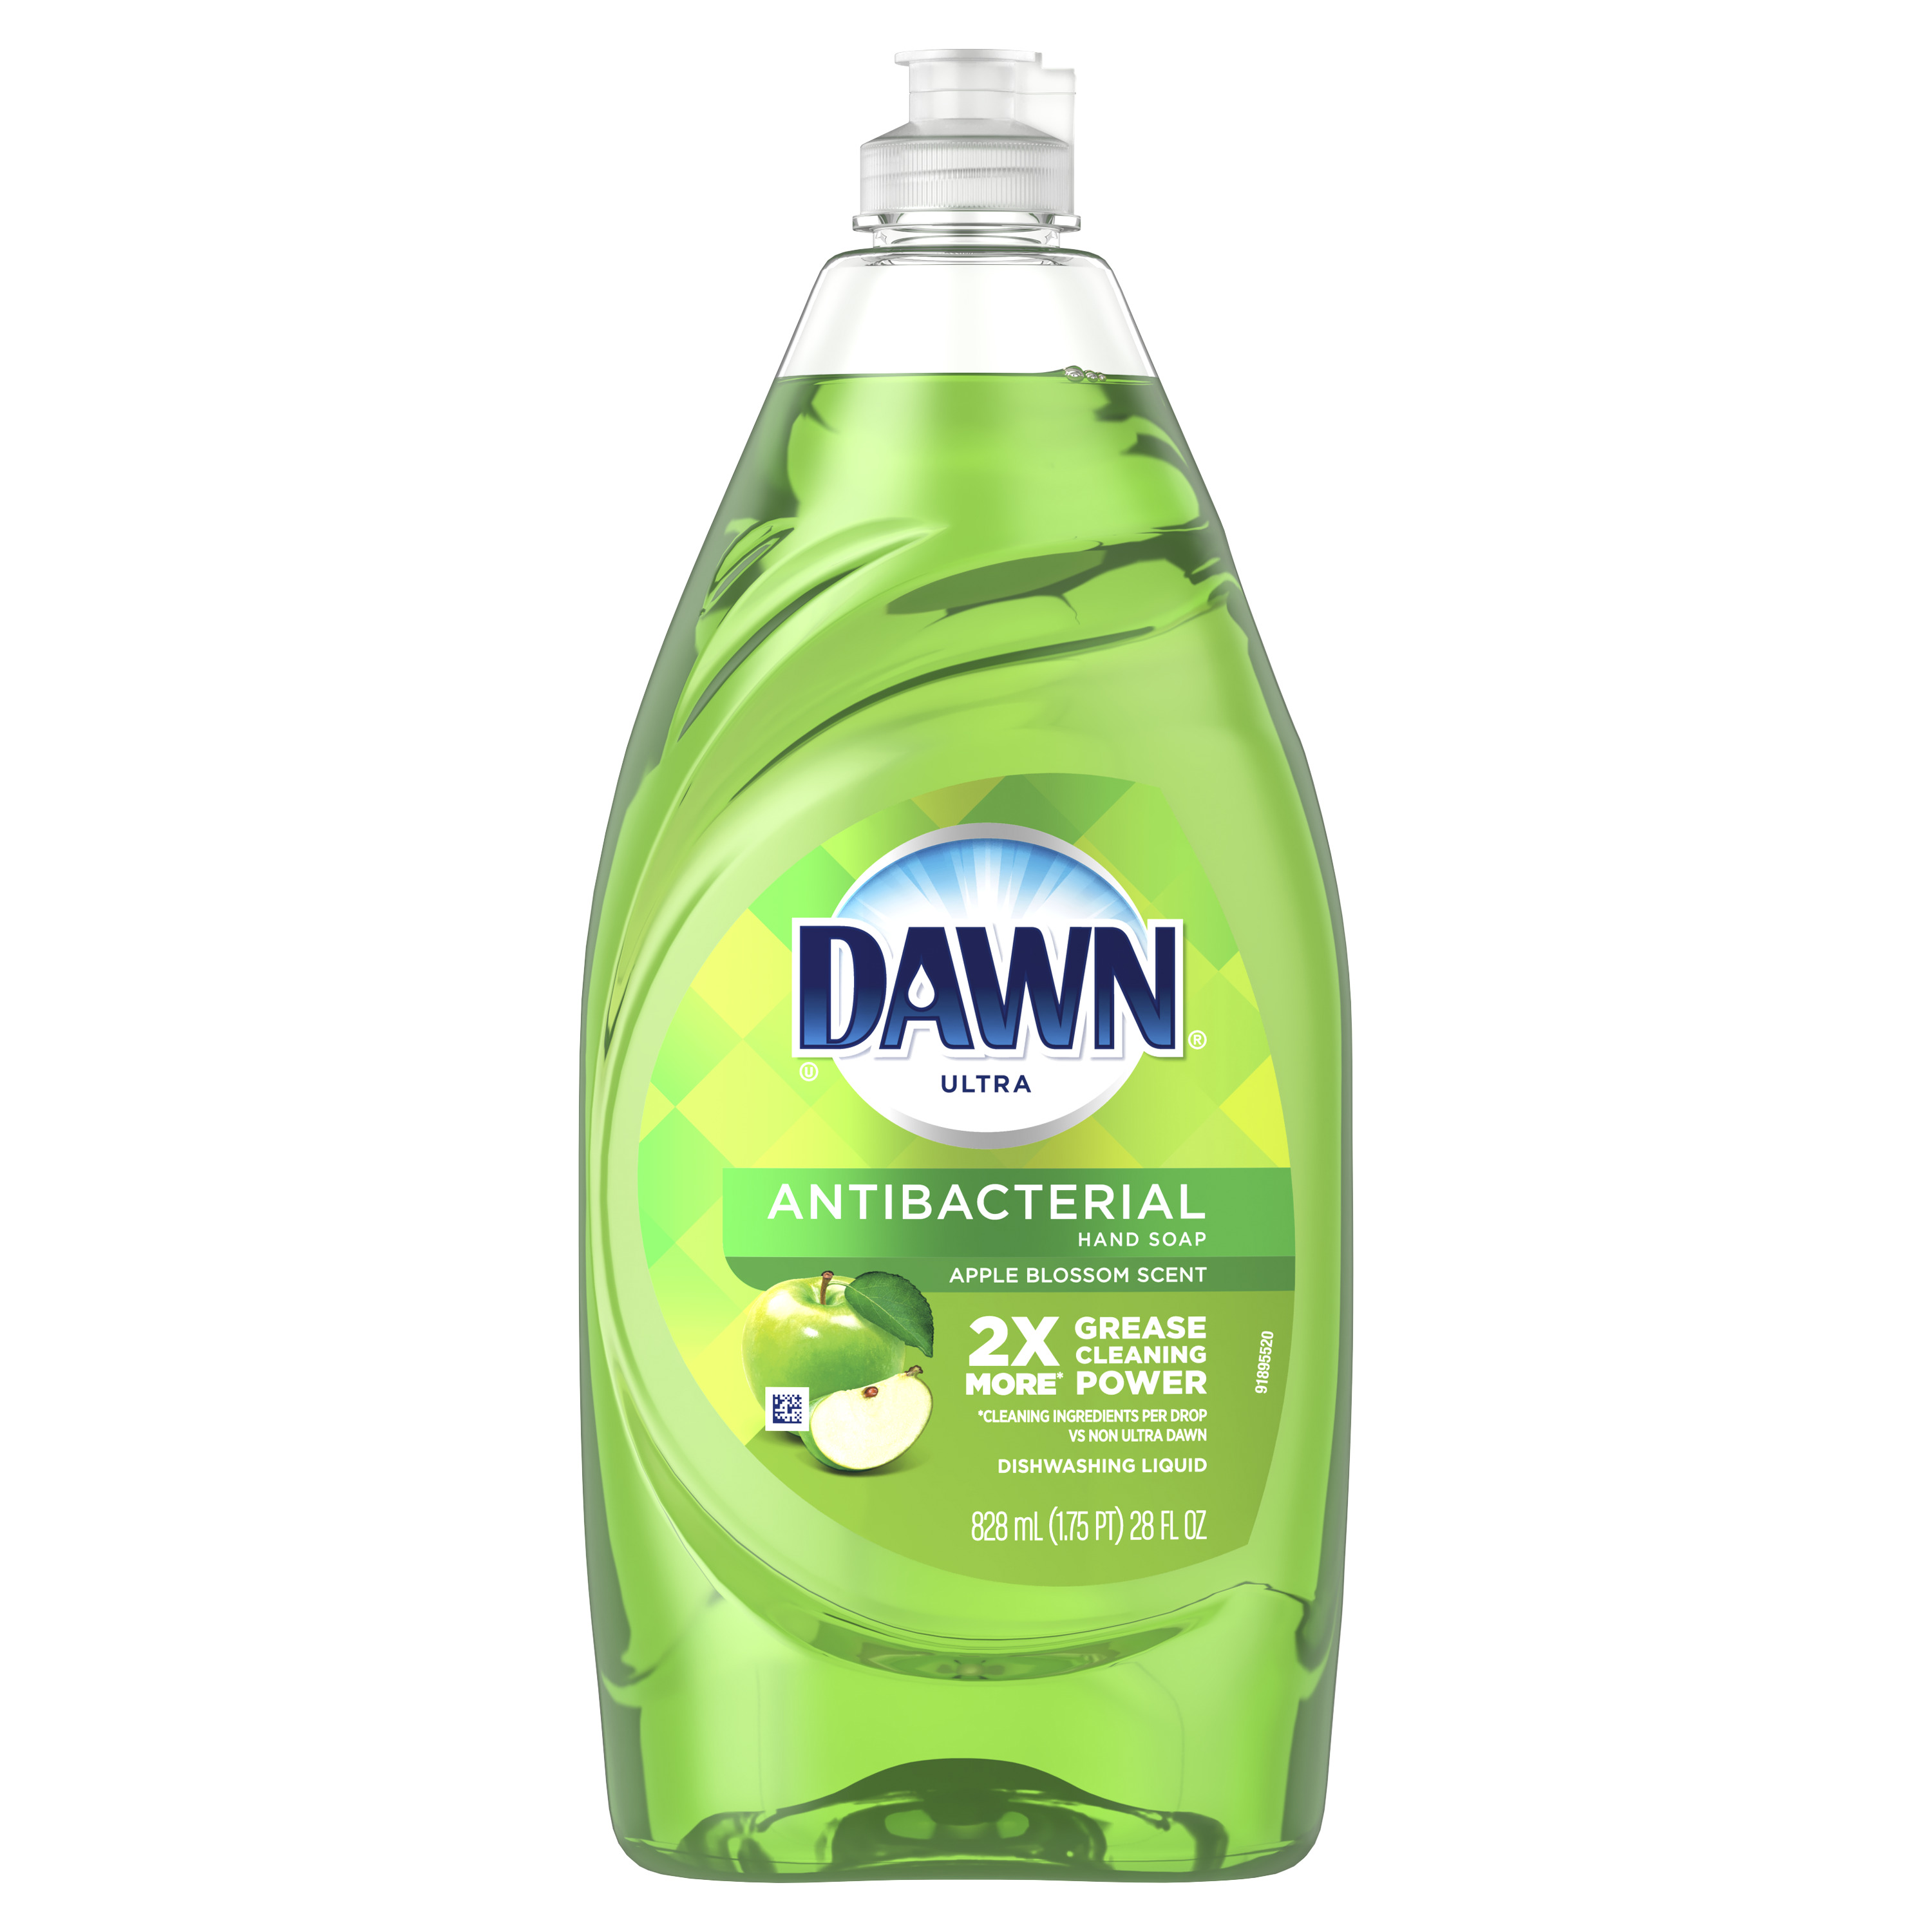 Dawn Ultra Antibacterial Hand Soap, Dishwashing Liquid Dish Soap, Apple Blossom Scent, 28 fl oz